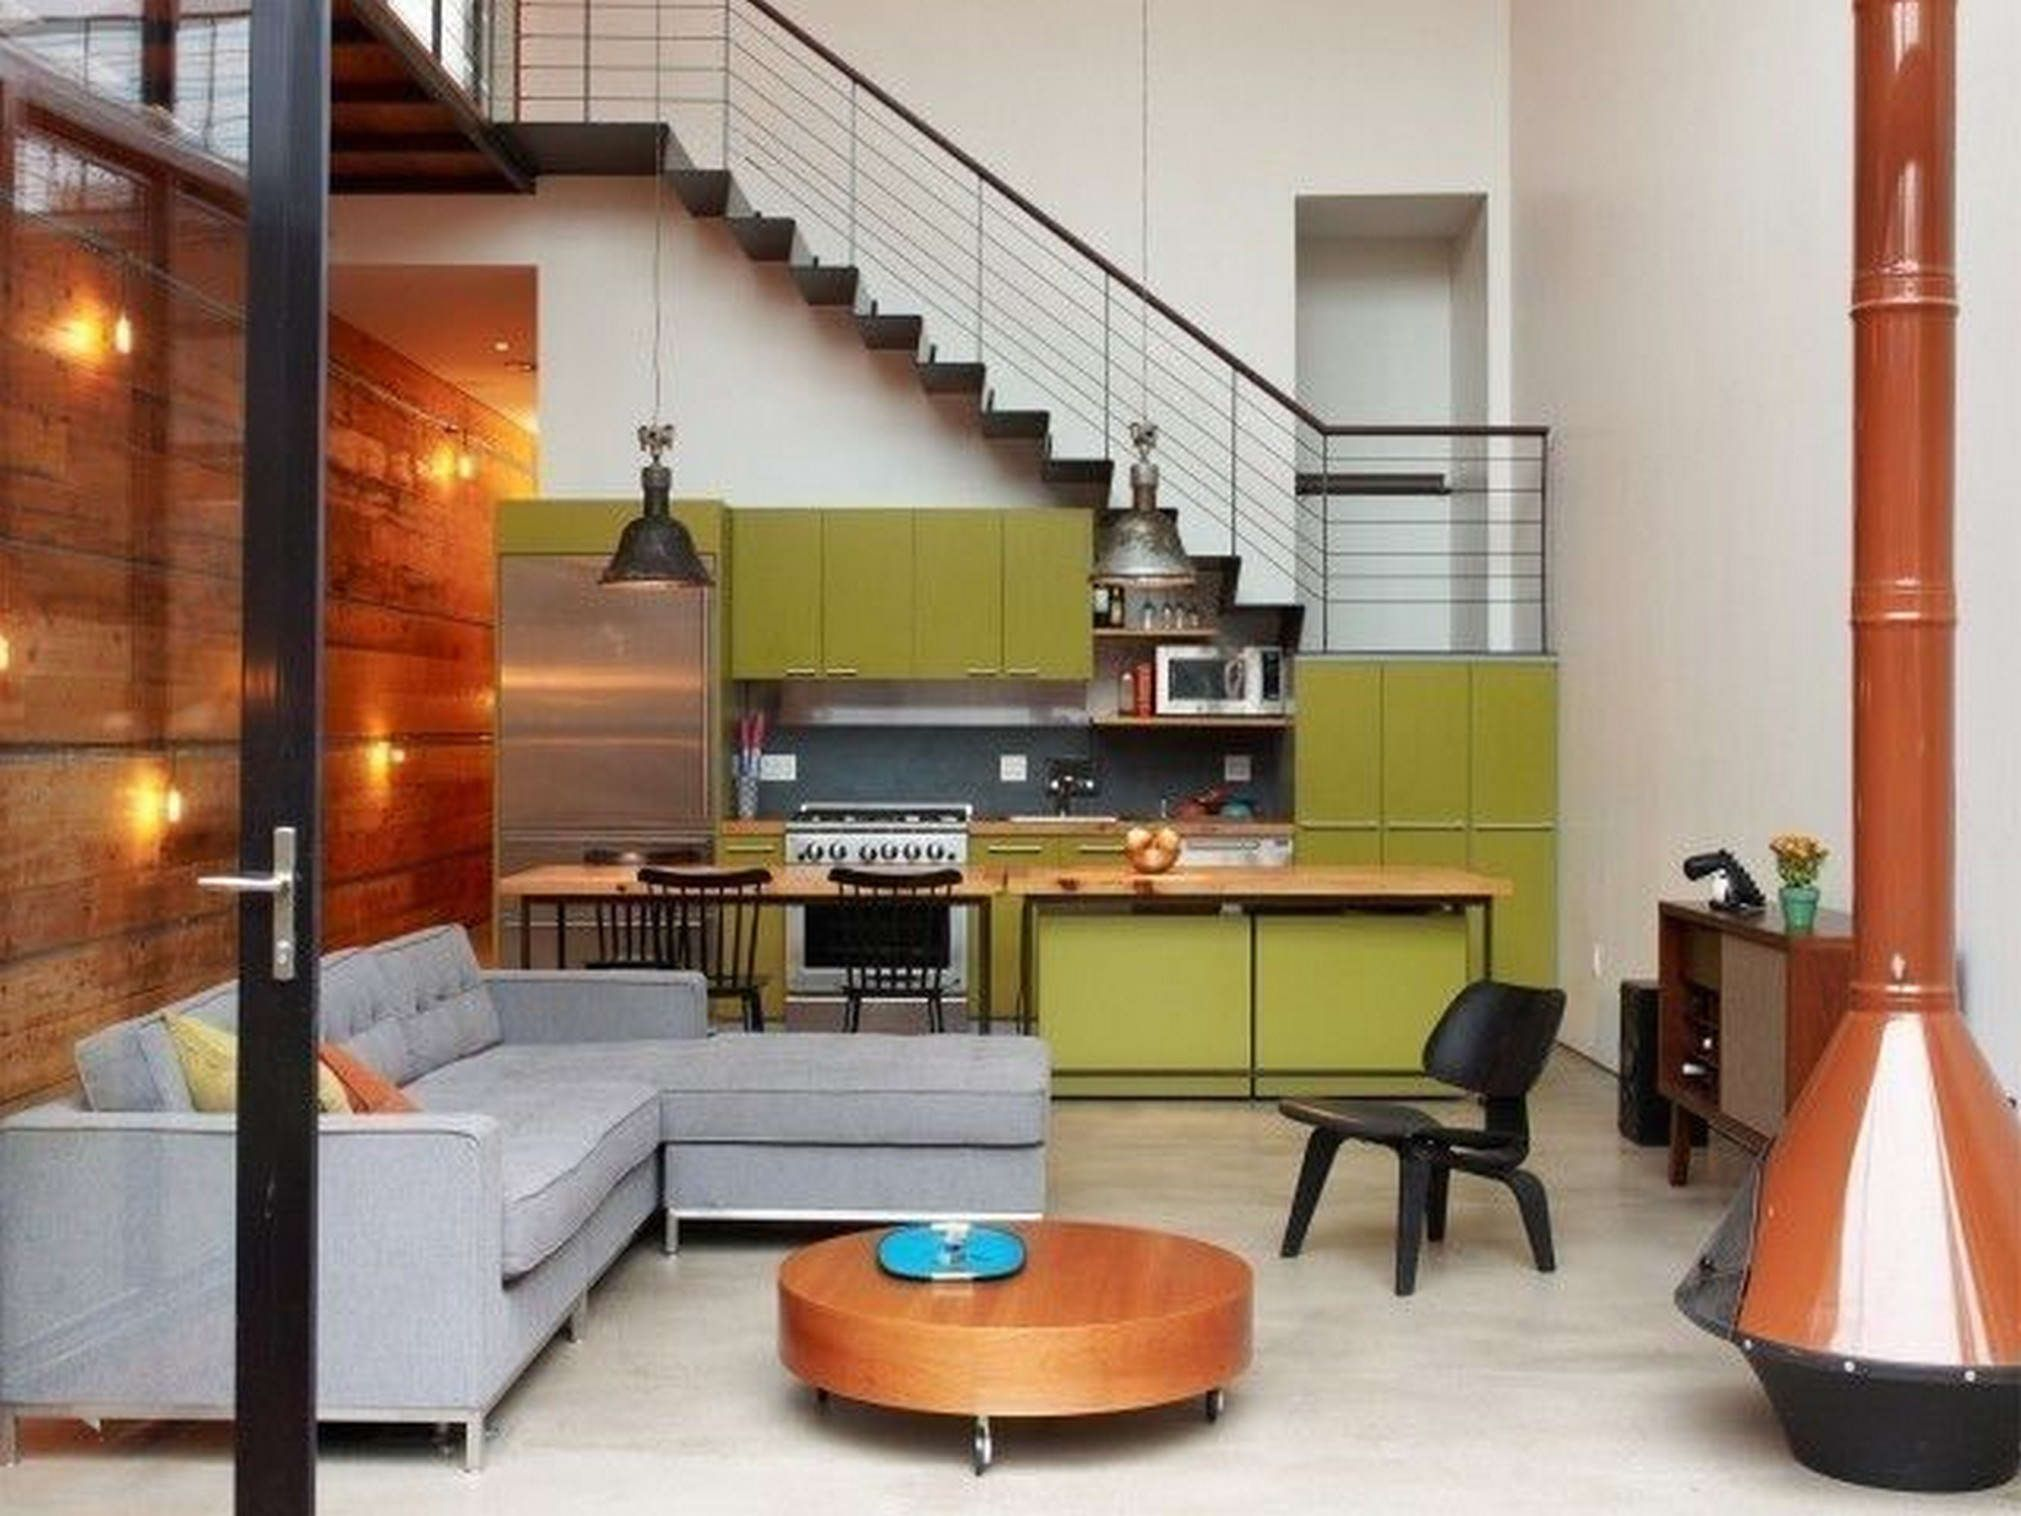 Exceptional Kitchen:Elegant Kitchen Under Stair Decor With With Green Modern Laminated  Kitchen Cabinet And L